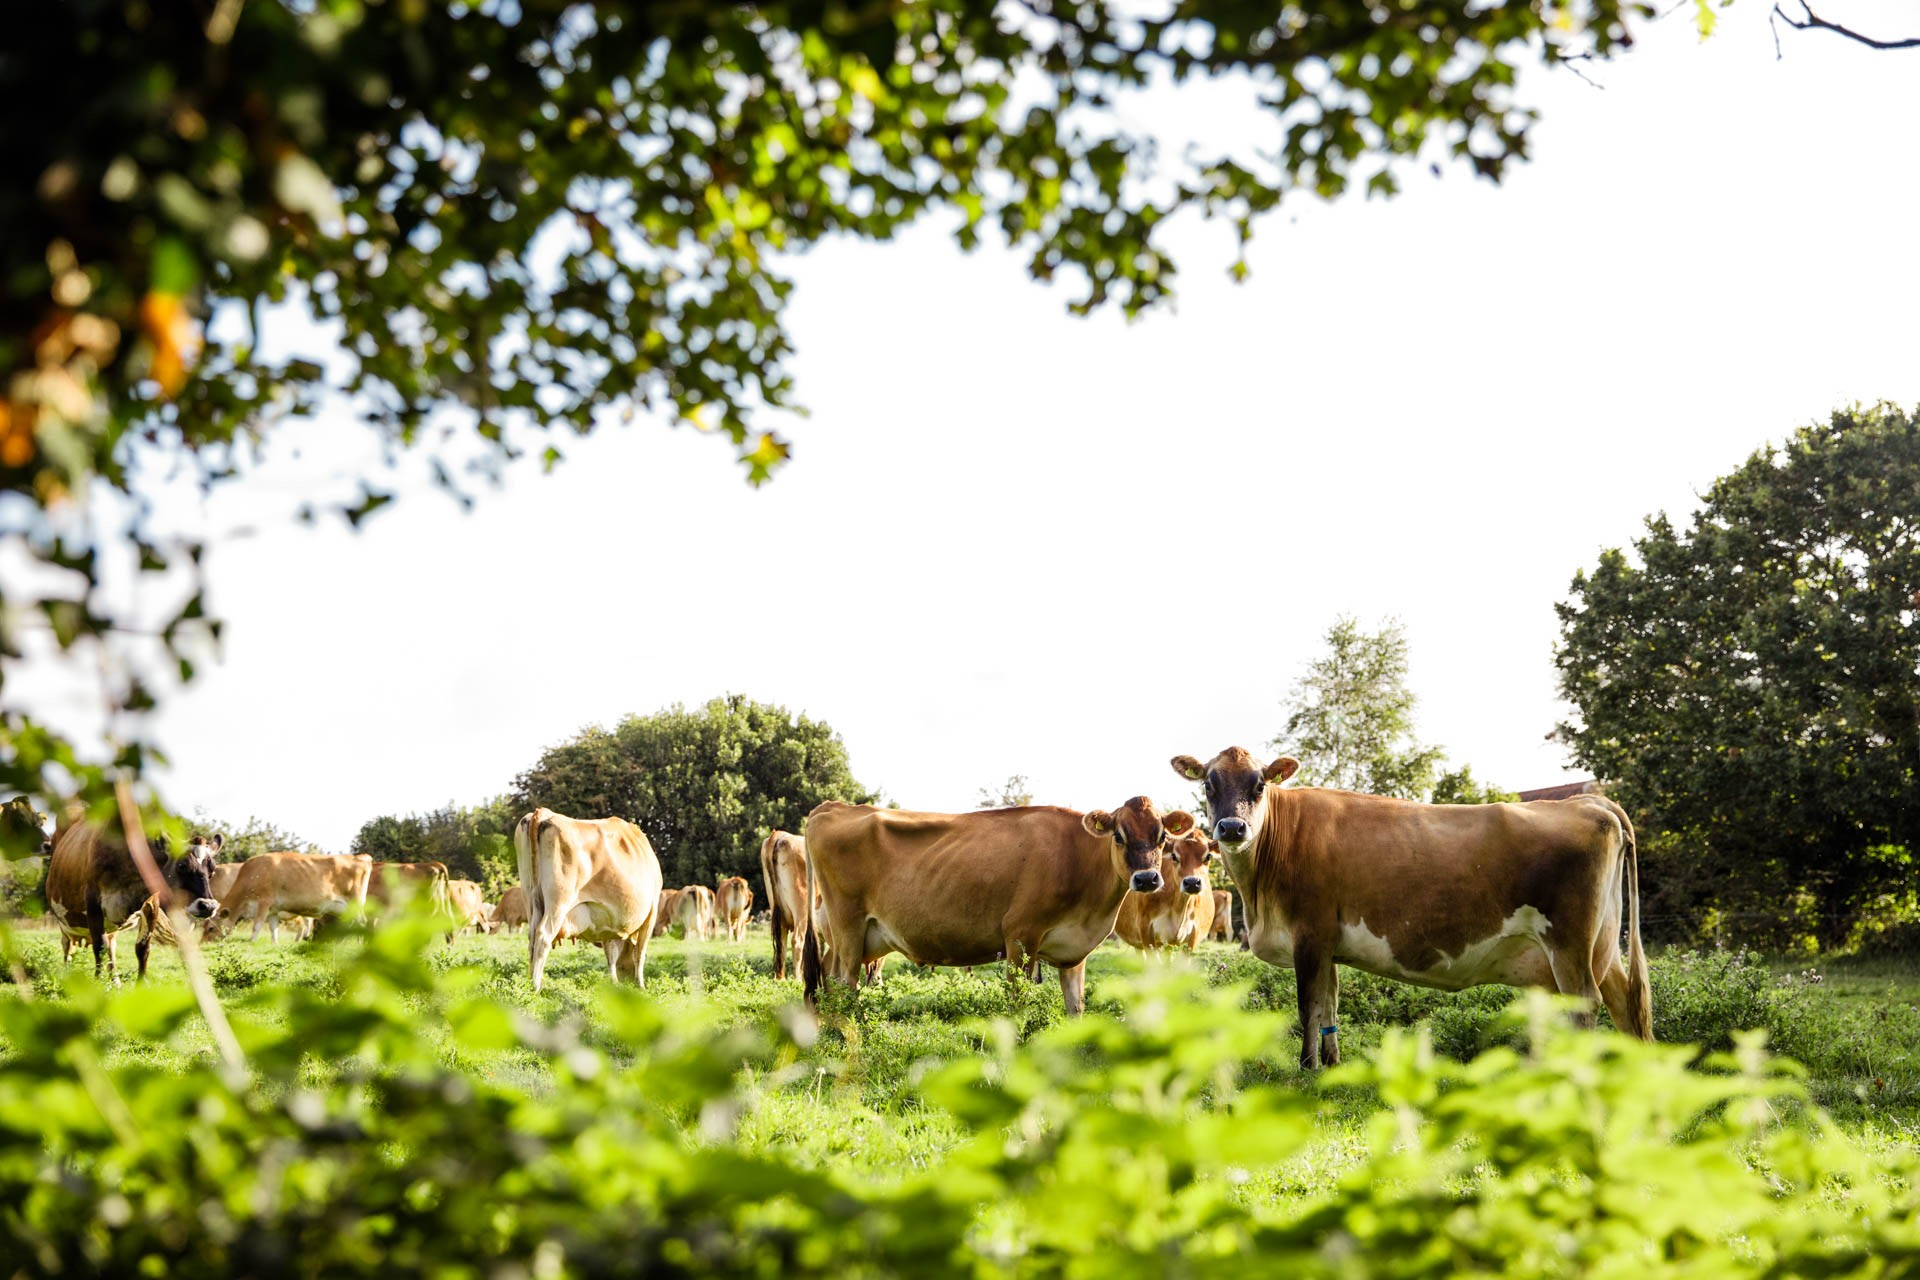 Jersey cows in a field in Jersey